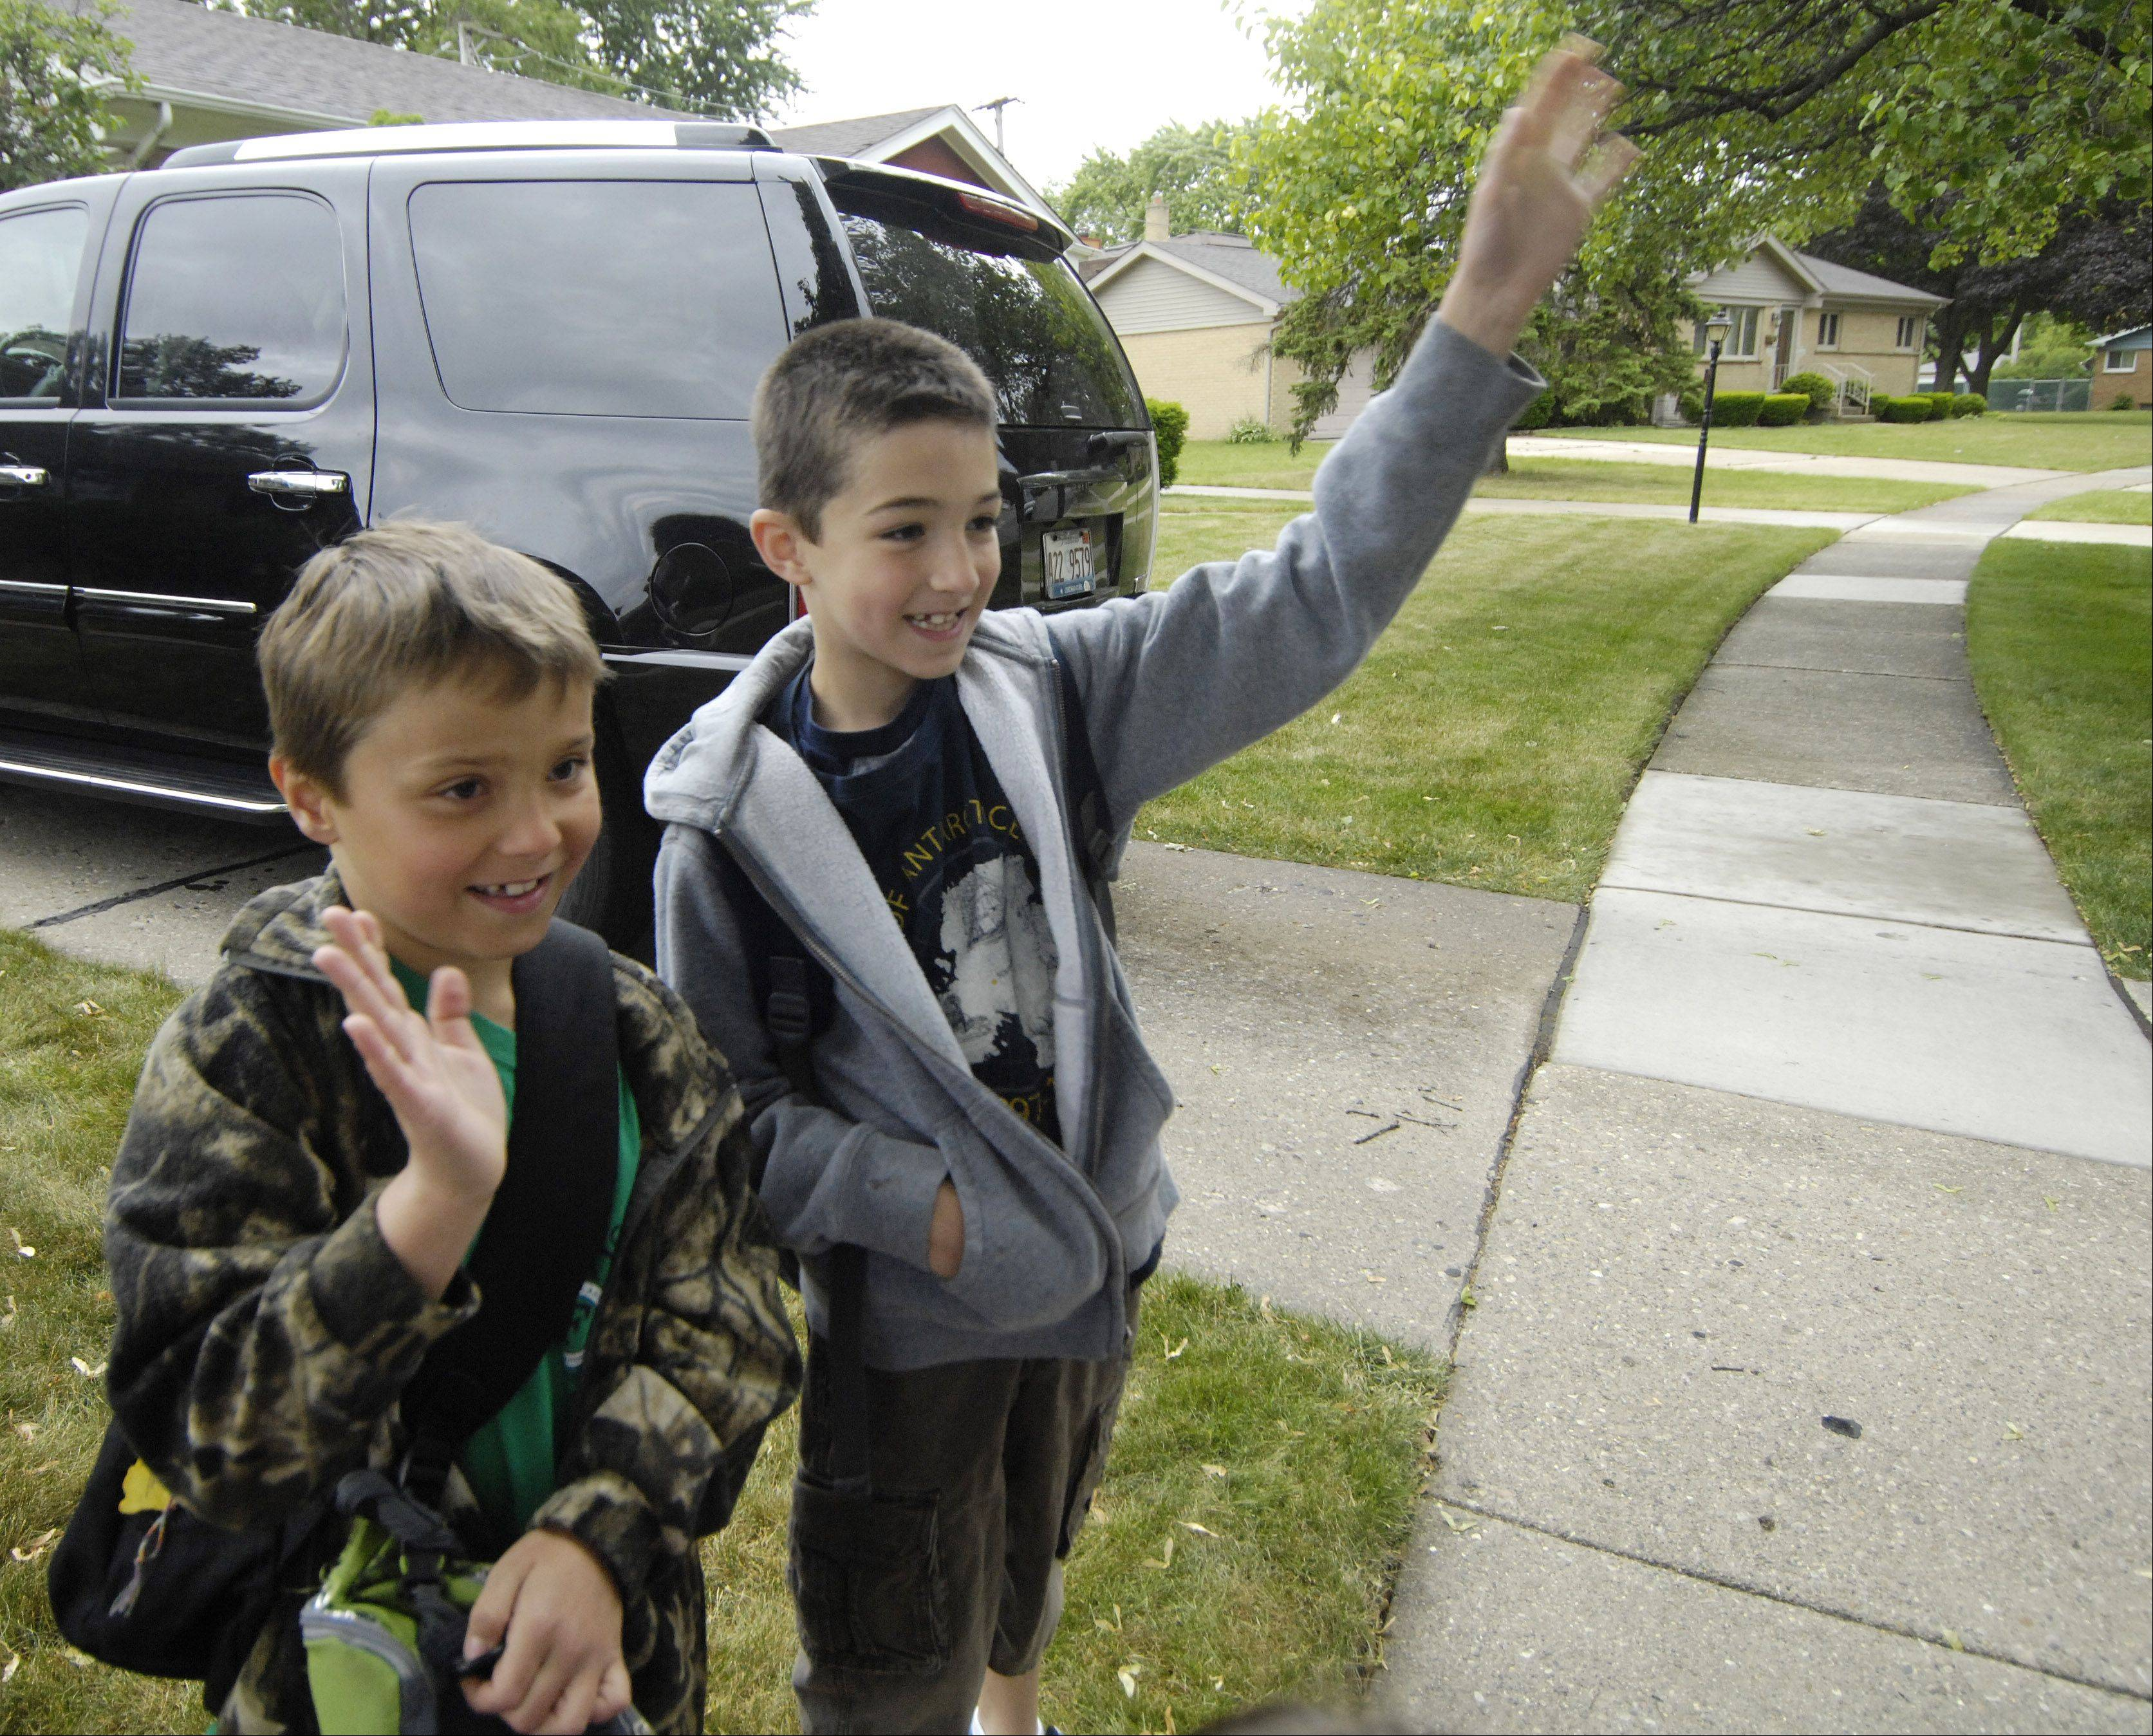 Second-graders Carter Jedras and his friend Bryce Tuchner wave as a fire engine arrives to take them to Fairview Elementary School in Mount Prospect Thursday.